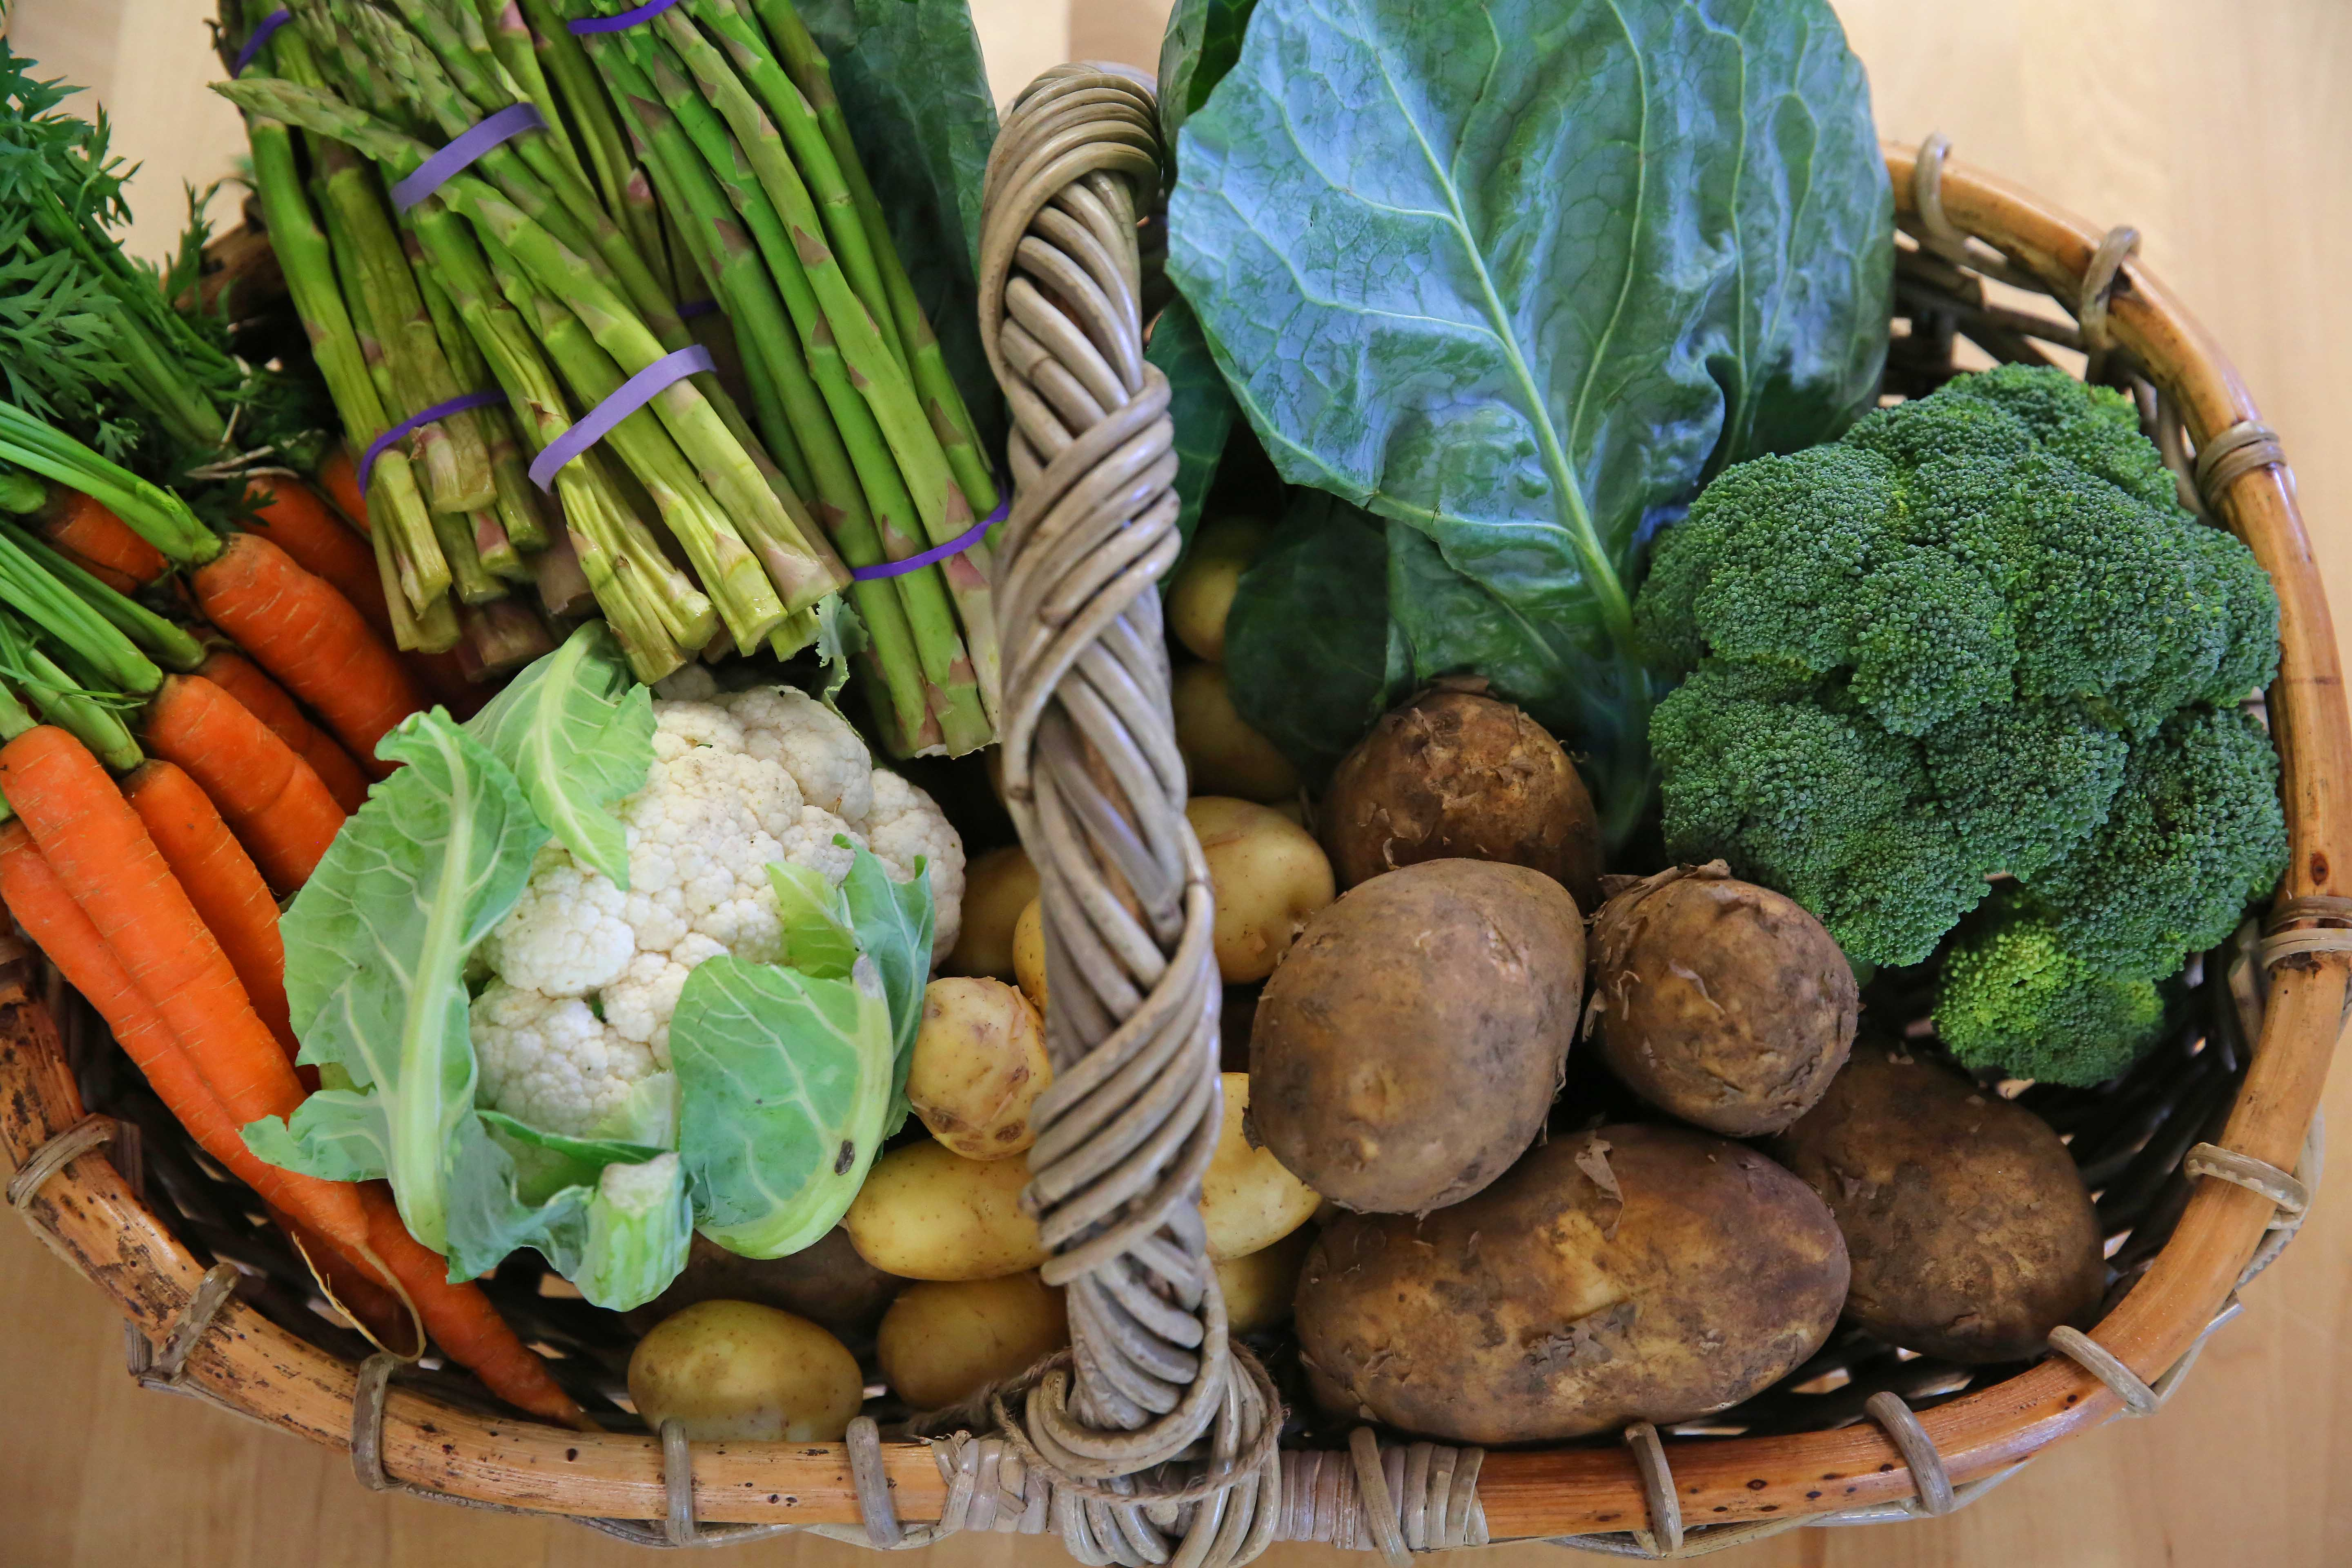 Selection of Veg in basket